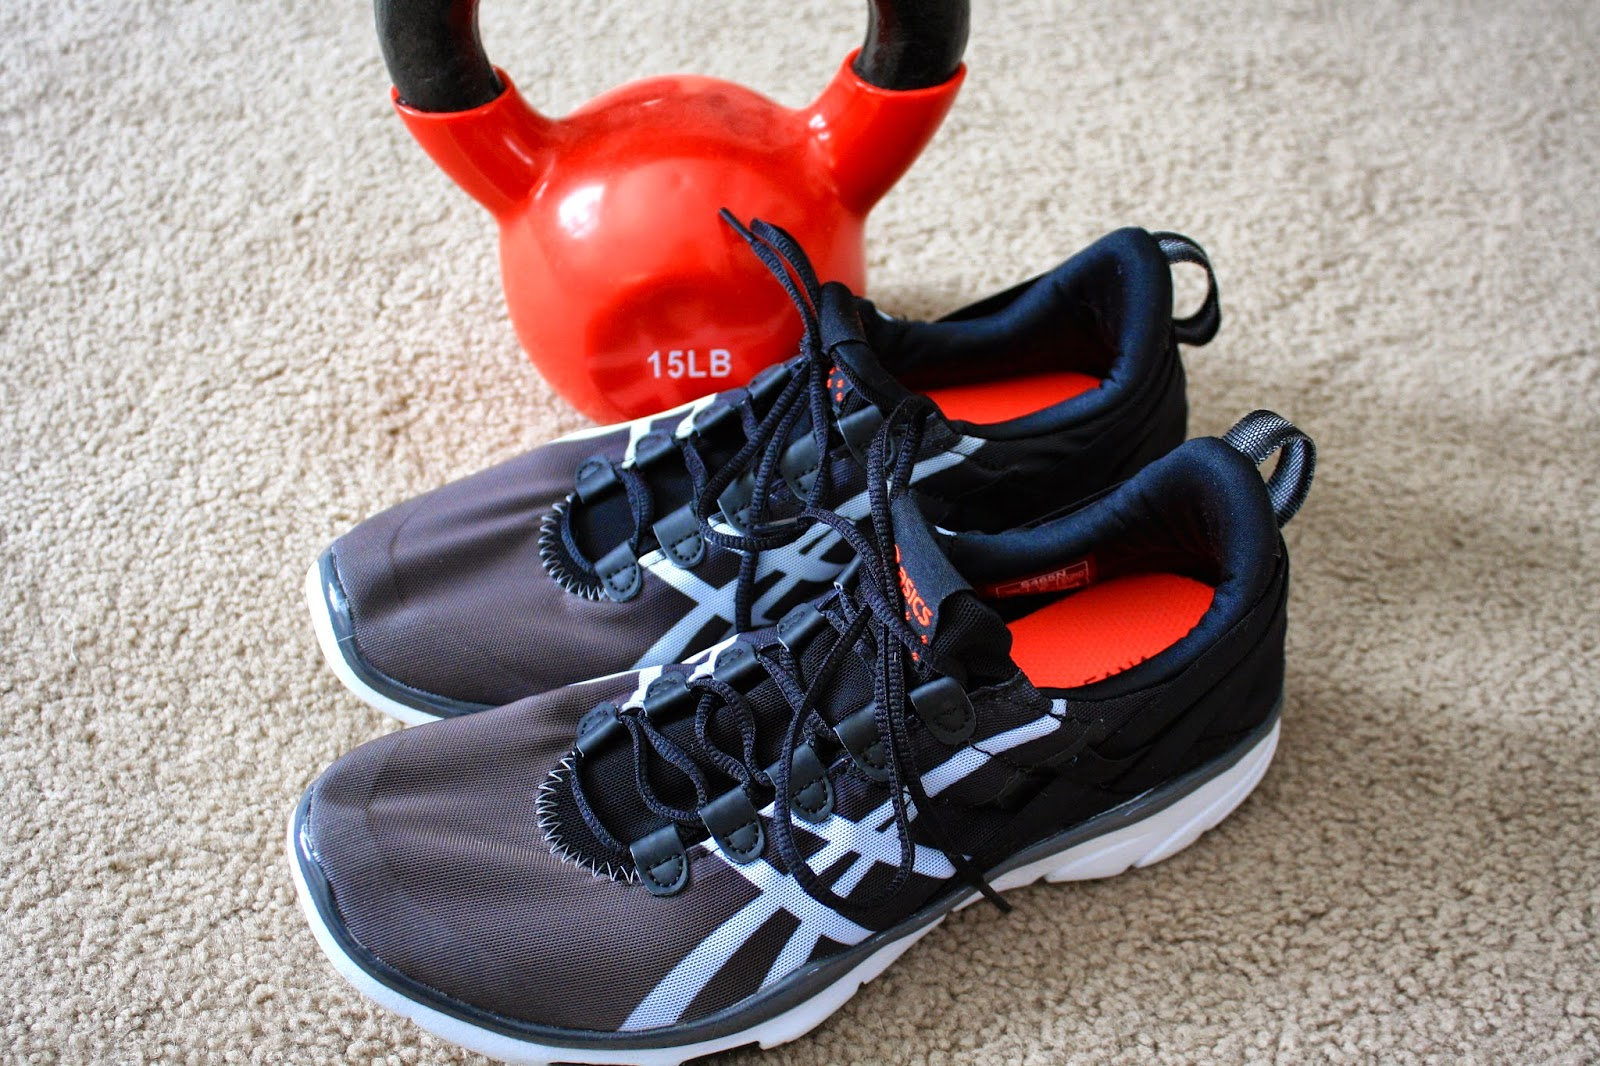 de ultramar Comparable Asentar  Lisa Living Well: ASICS GEL-Fit Sana Review